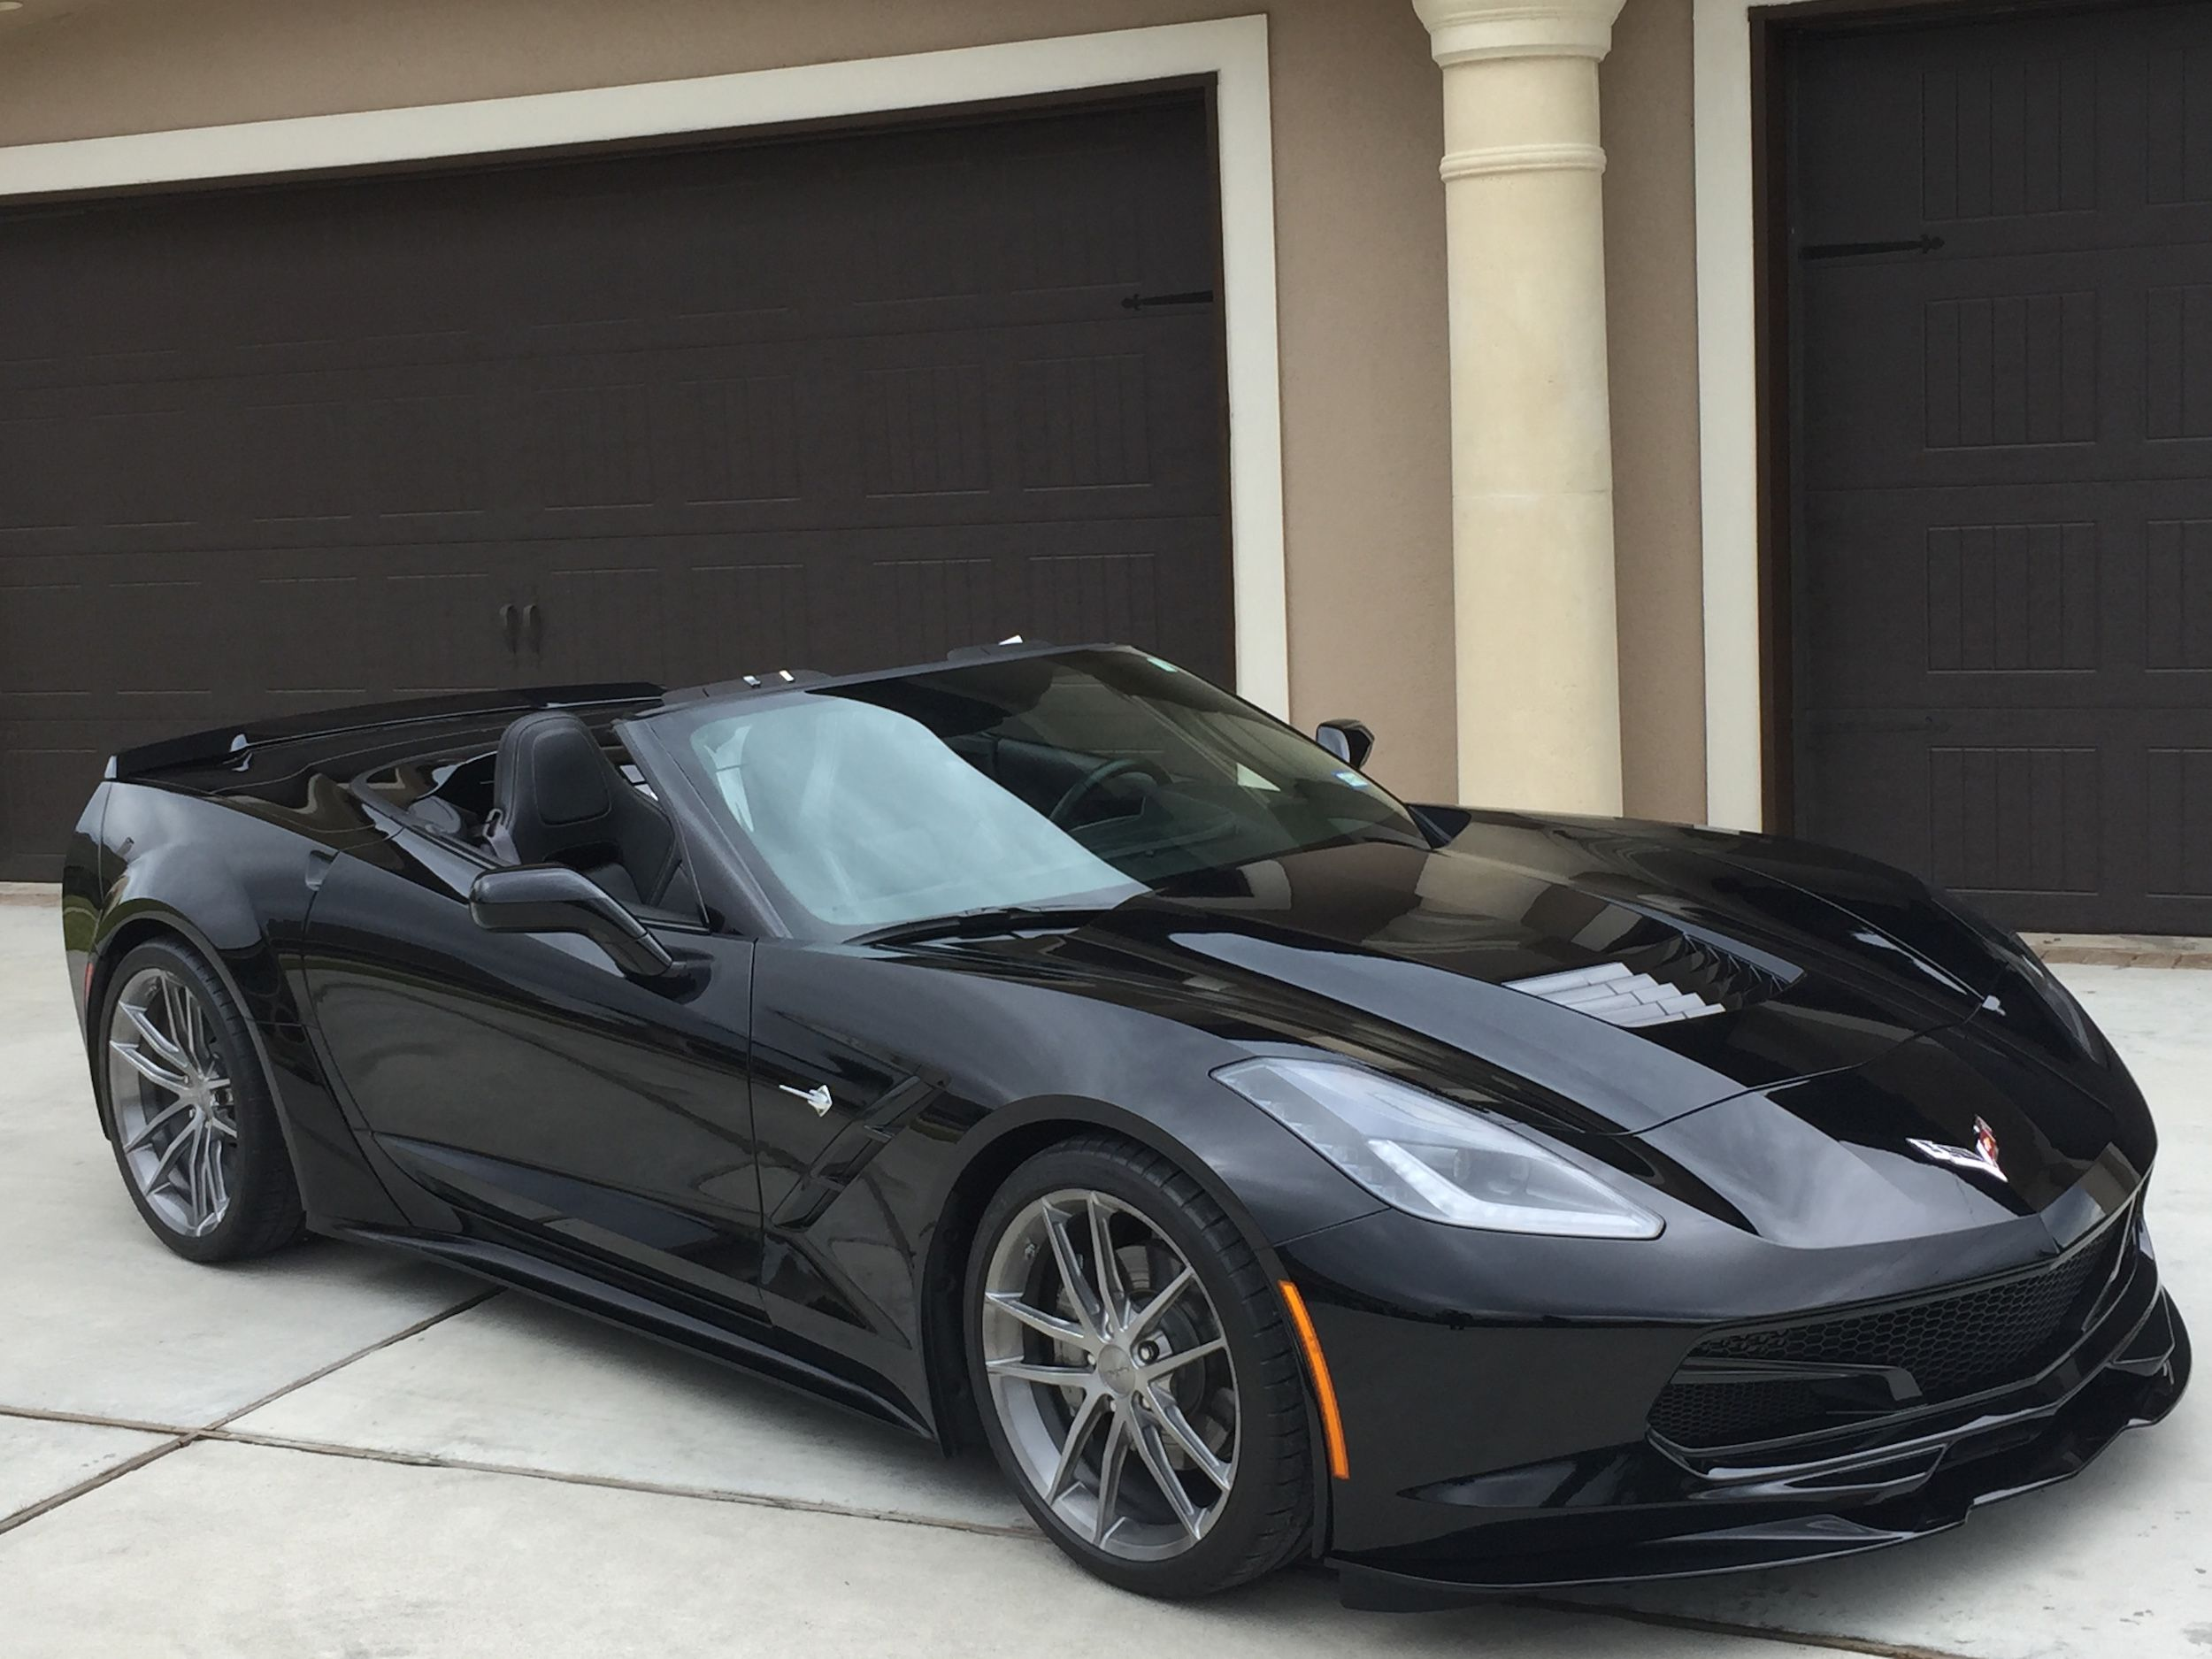 Keith Traylor's C7 convertible started as a basic Stingray convertible. But then the team at 21st Century Muscle Cars equipped it with an 830HP engine pkg, ACS Composites widebody & aero kits, and Michelin Pilot Super Sport tires on 19x9.5 & 20x12 Forgeline 1pc forged monoblock AR1 wheels finished in Transparent Smoke! See more: http://www.forgeline.com/customer_gallery_view.php?cvk=1638  #Forgeline #forged #monoblock #AR1 #notjustanotherprettywheel #madeinUSA #Chevy #C7 #Corvette…